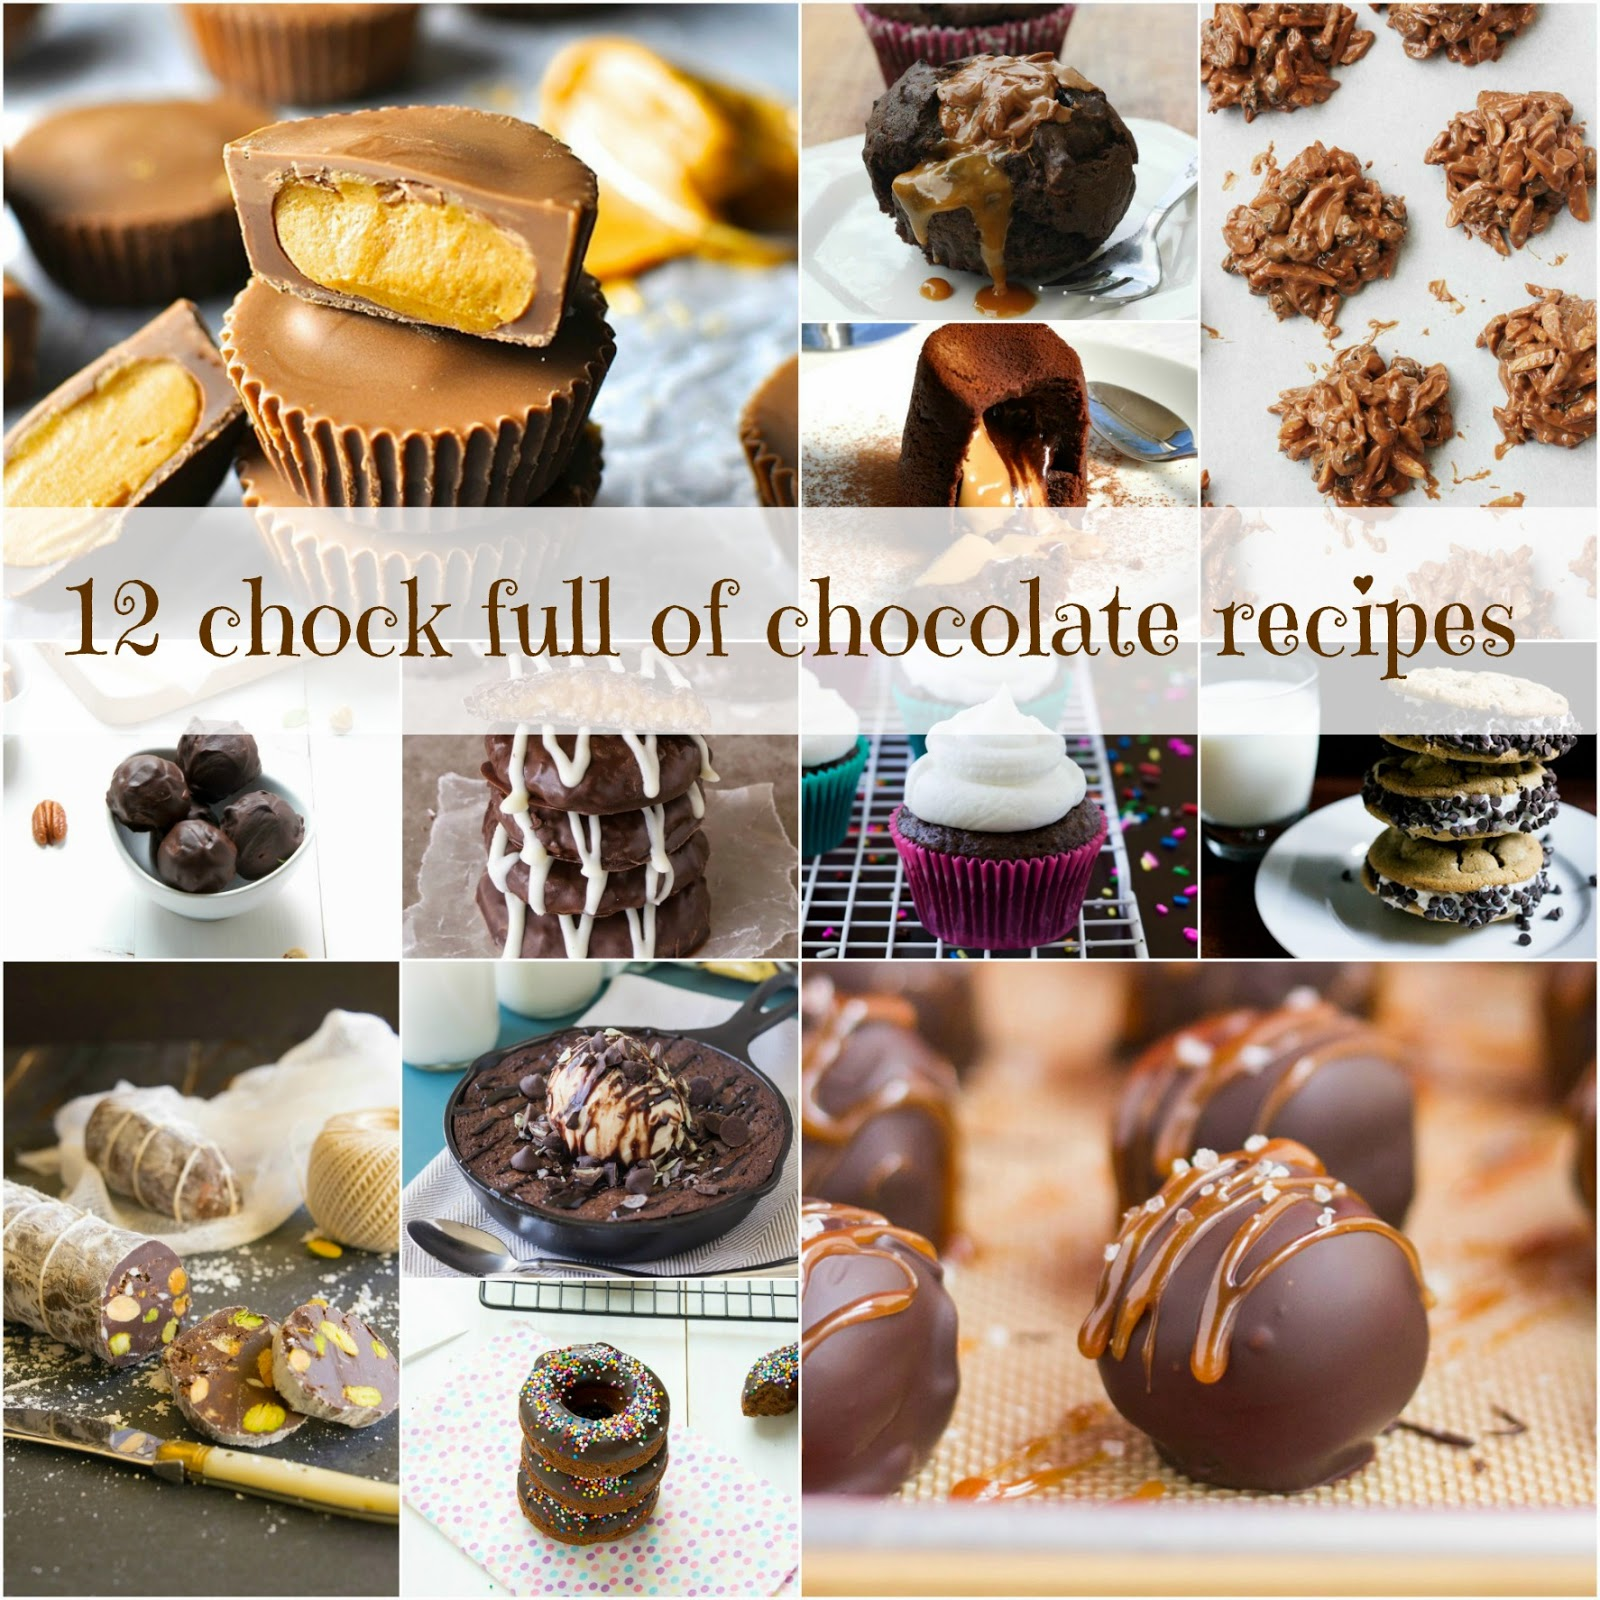 12 chock full of chocolate recipes